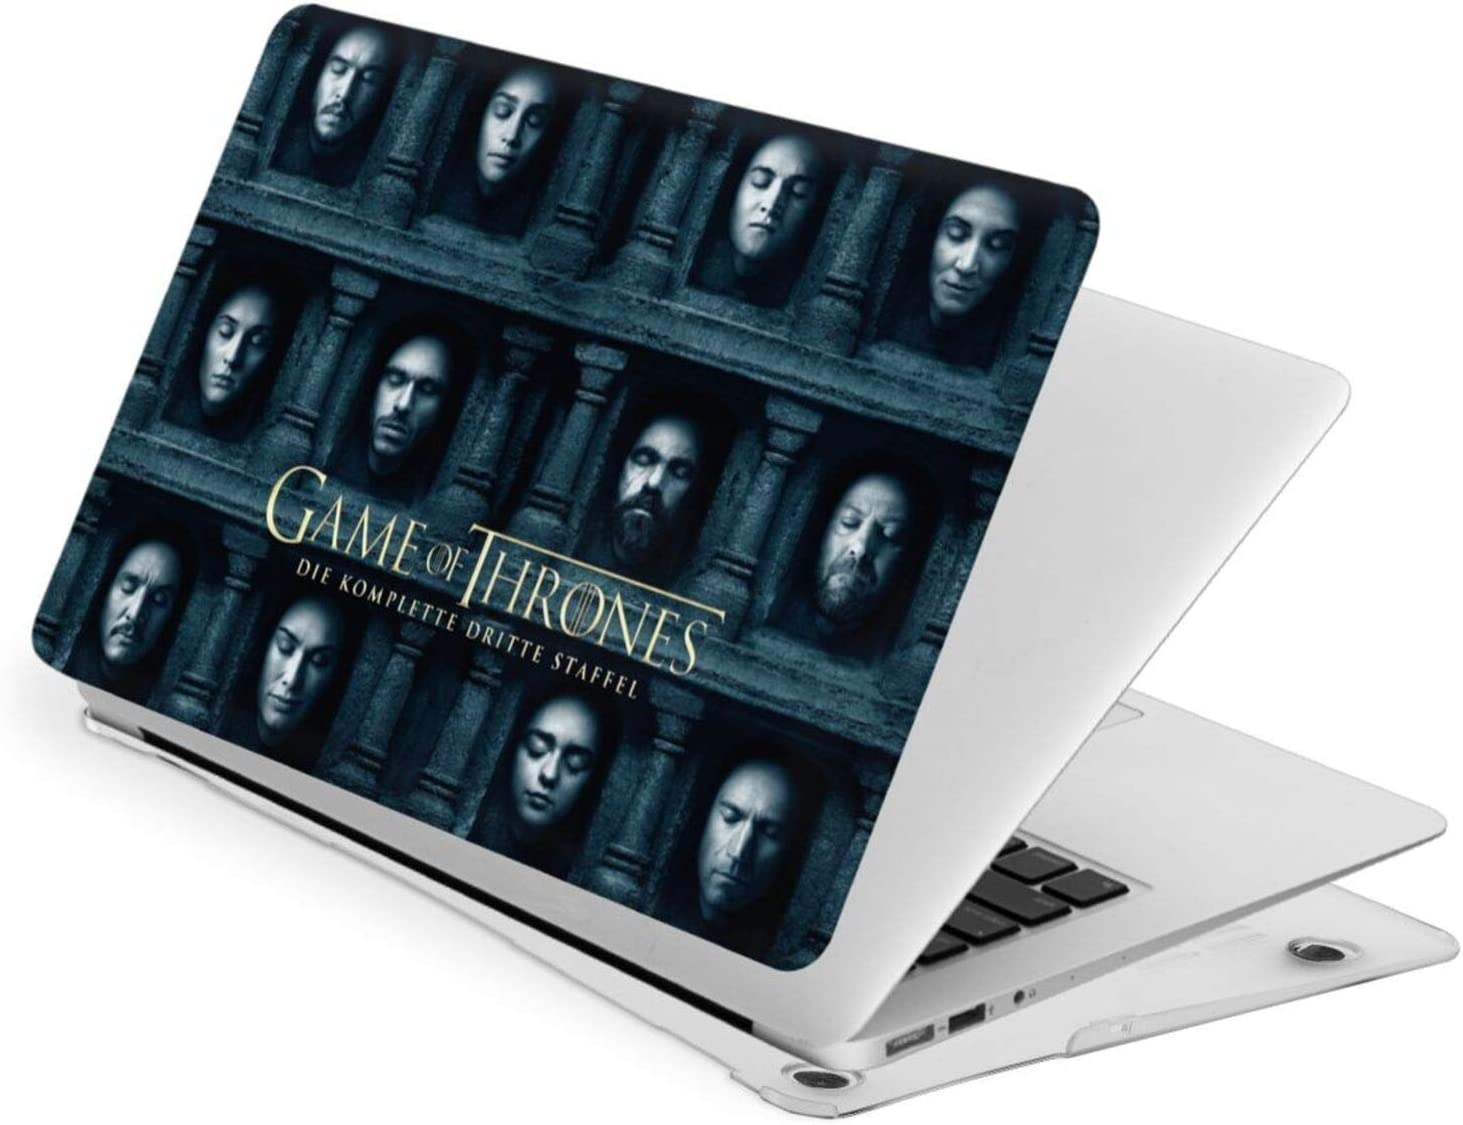 JHJHJ Game of Thrones Logo Laptop Case Fortouch13 Hard Case Shell Cover + A Keyboard Swipe The Quality of A Material is Frivolous,Good Heat Dissipation Performance